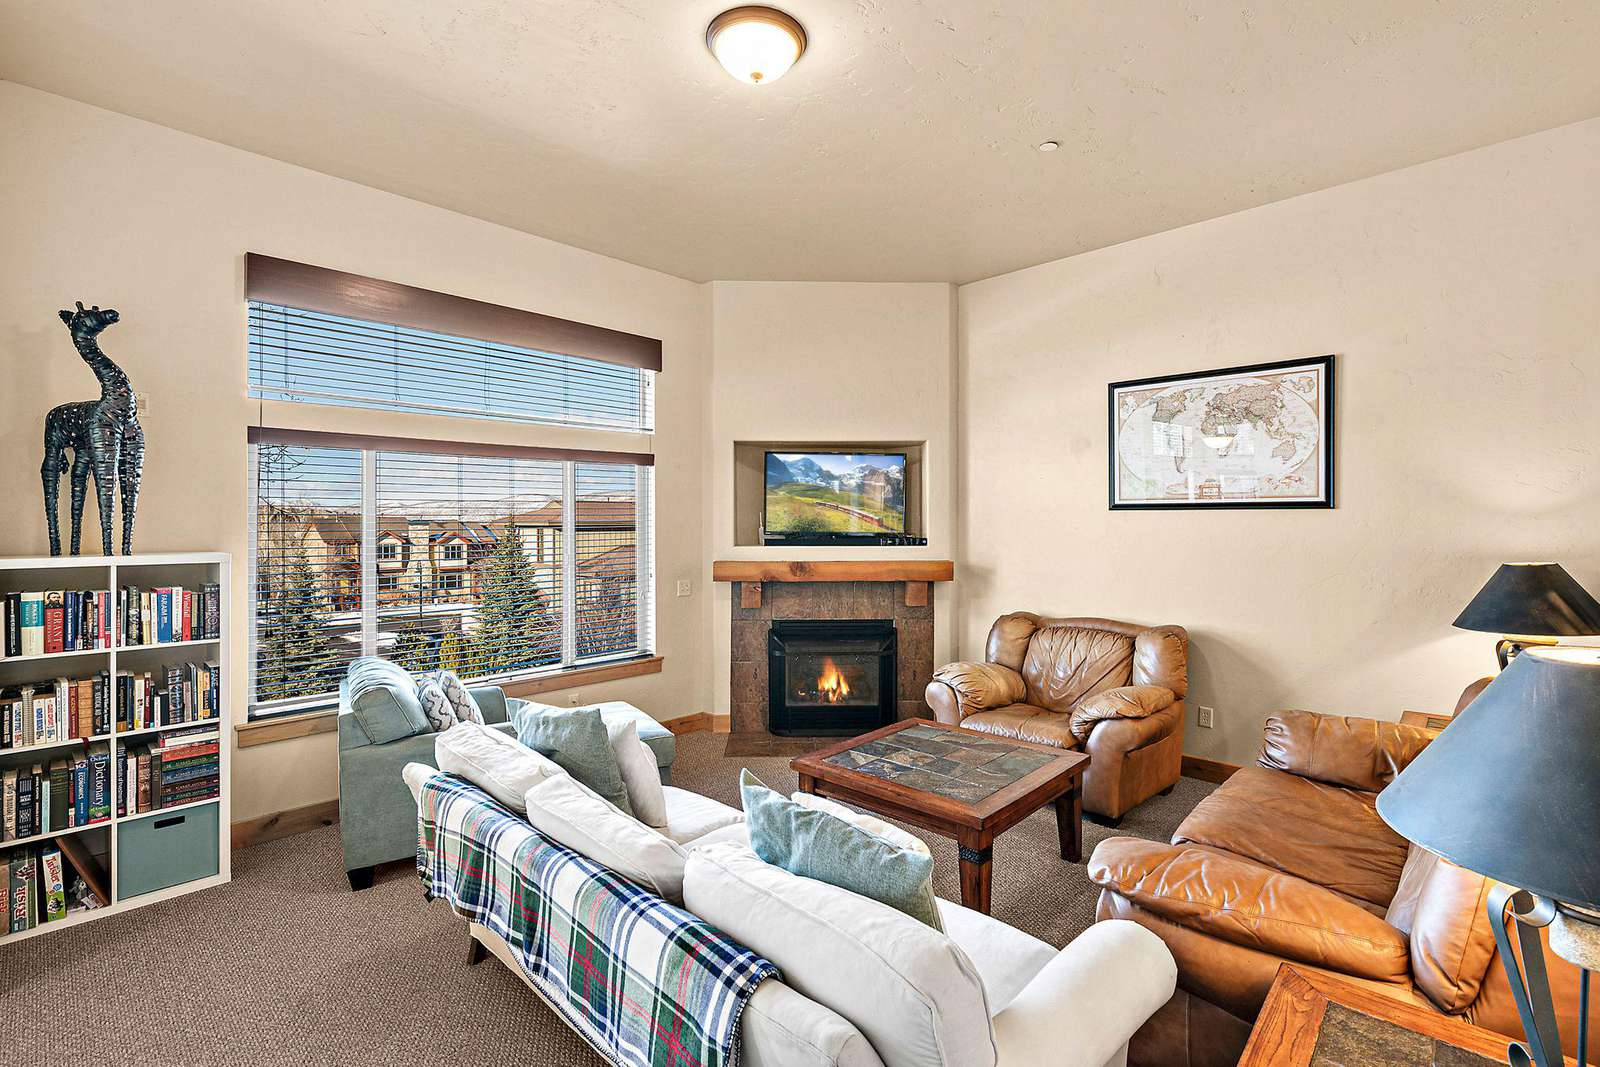 Open living area with TV and fireplace